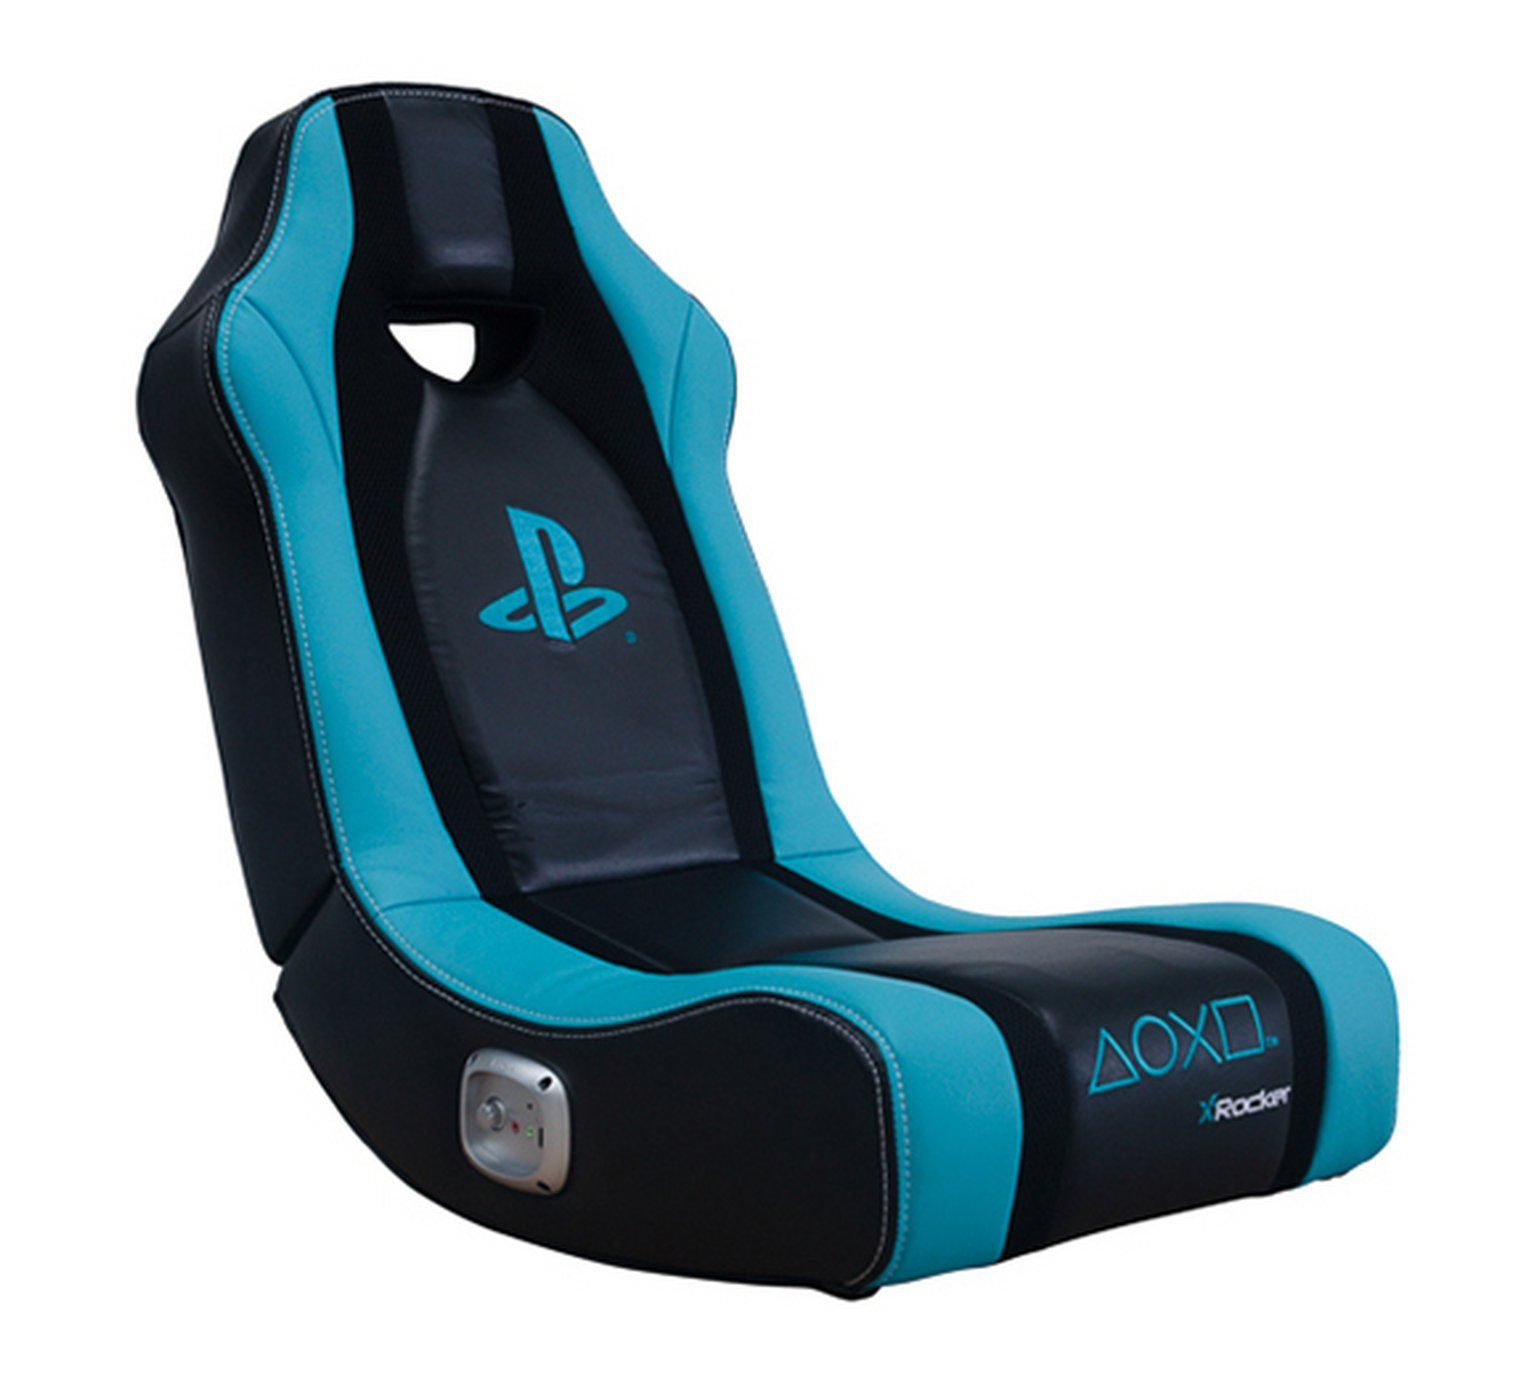 Baby Chairs Argos Buy X Rocker Wraith Playstation Gaming Chair Gaming Chairs